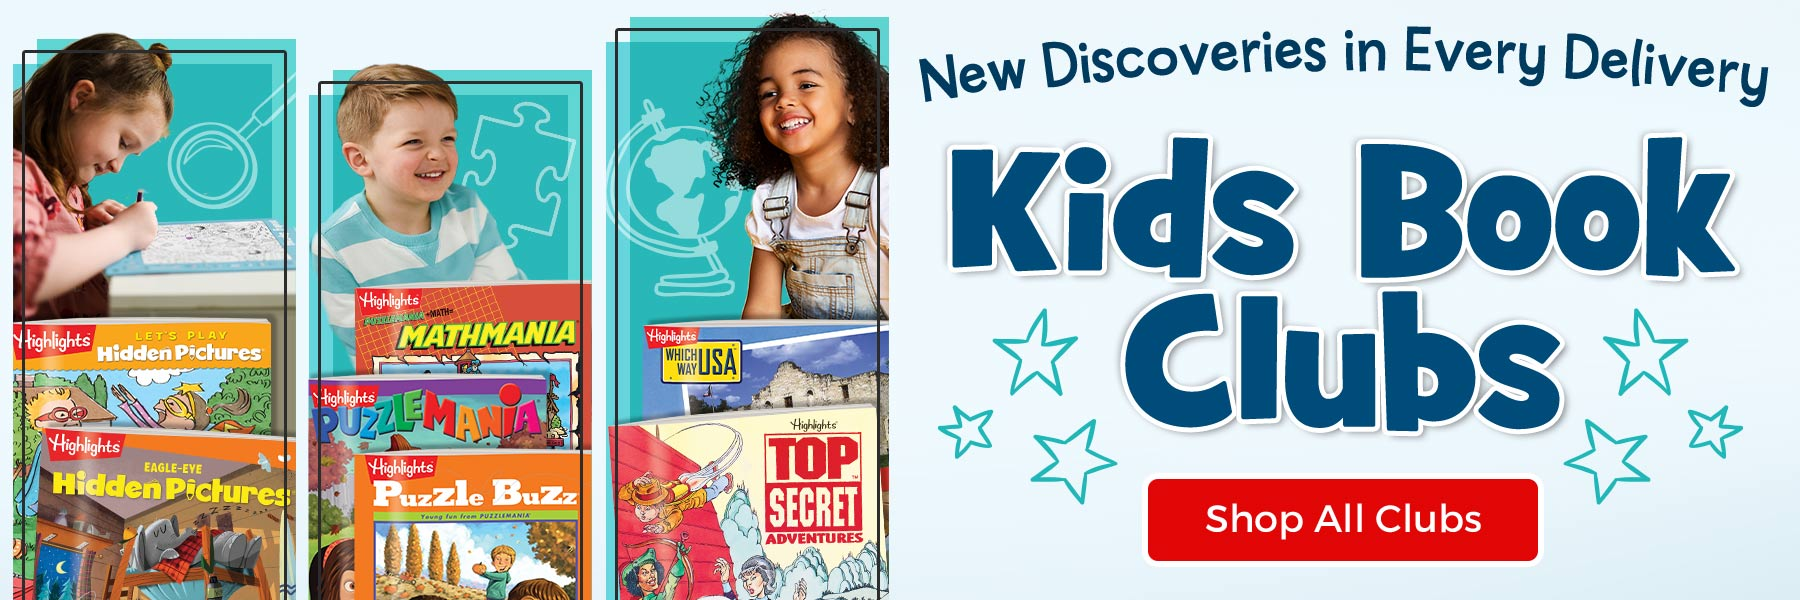 Get new discoveries in every delivery of our Kids Book Club – find one that's right for your child!